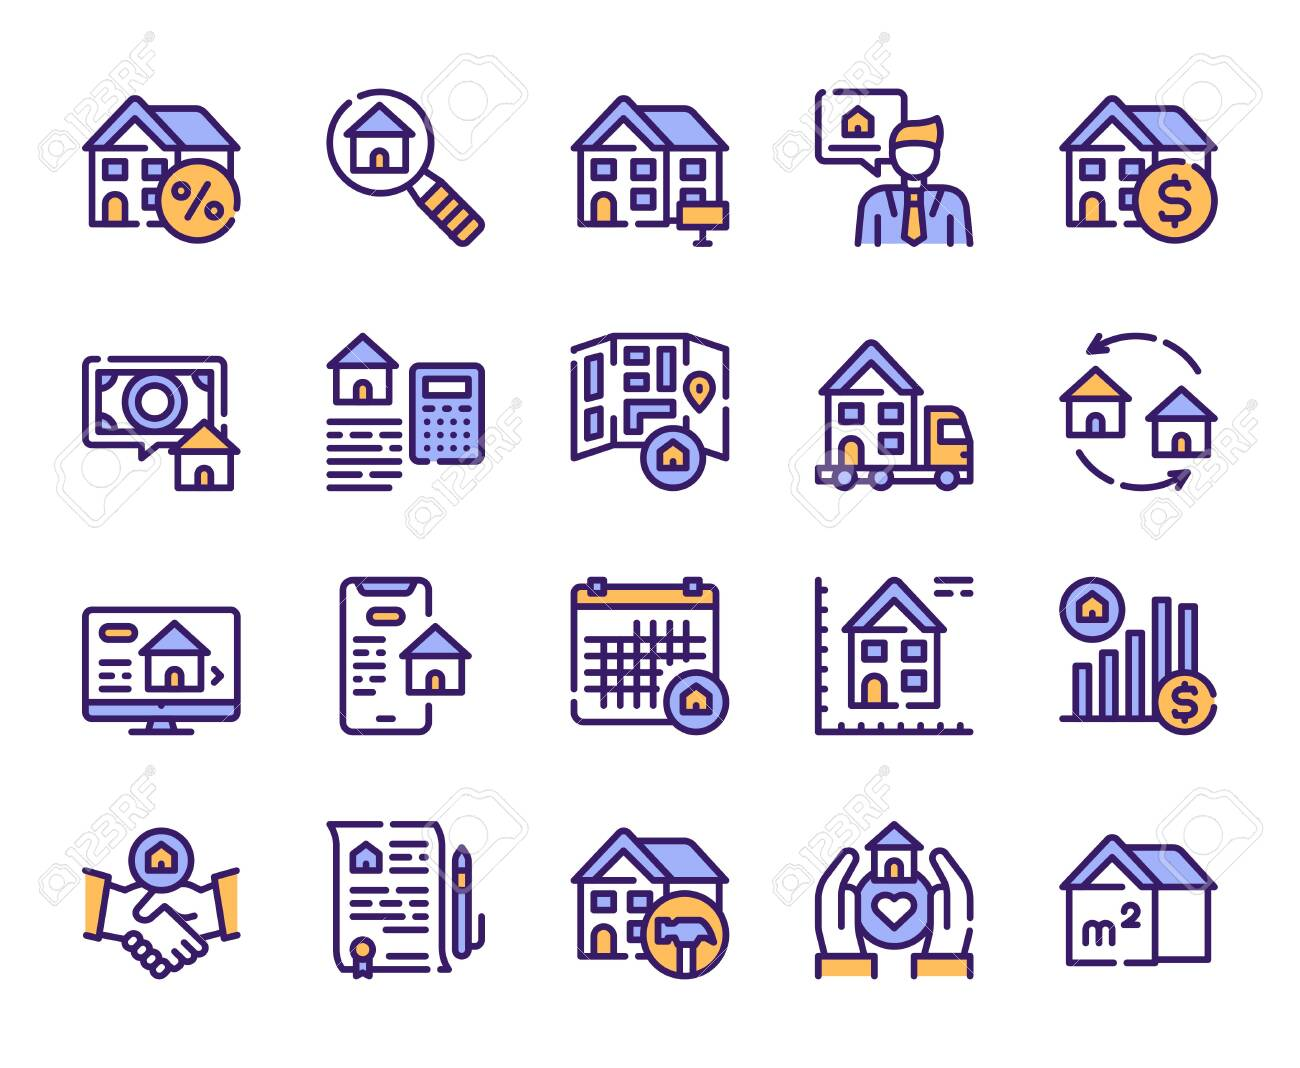 Real estate linear color vector icons set. House for rent and sale blue contour symbols. Moving, home renovation, realtor, mortgage. Commercial property outline illustrations collection - 136783369